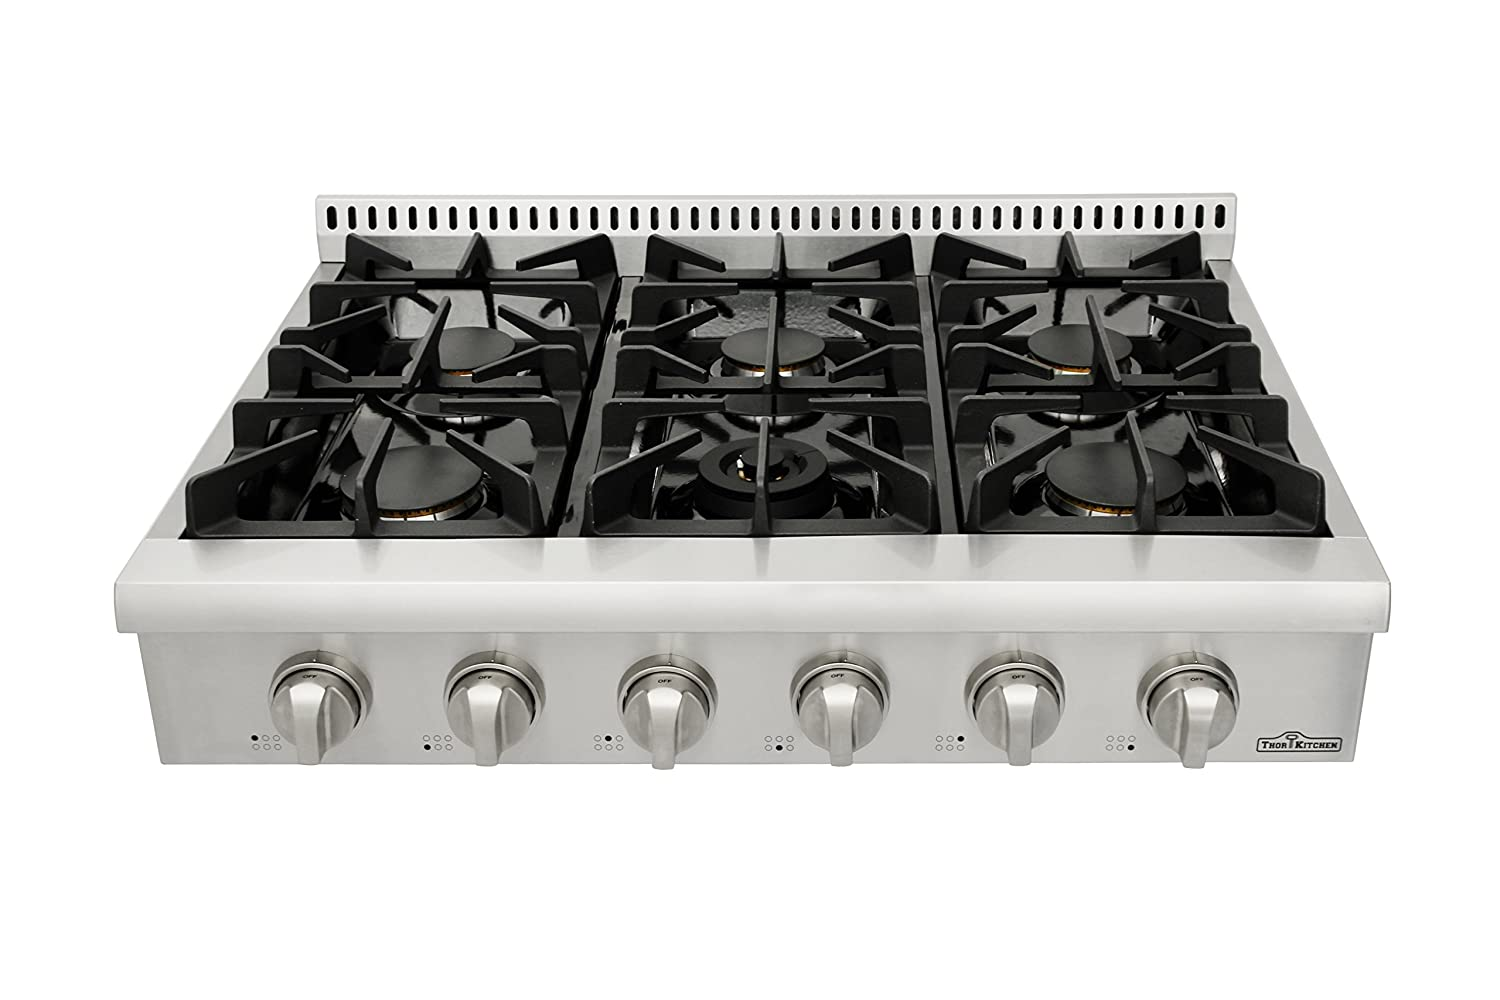 Thorkitchen Pro Style Gas Rangetop with 6 Sealed Burners 36 Inch Stainless Steel HRT3618U